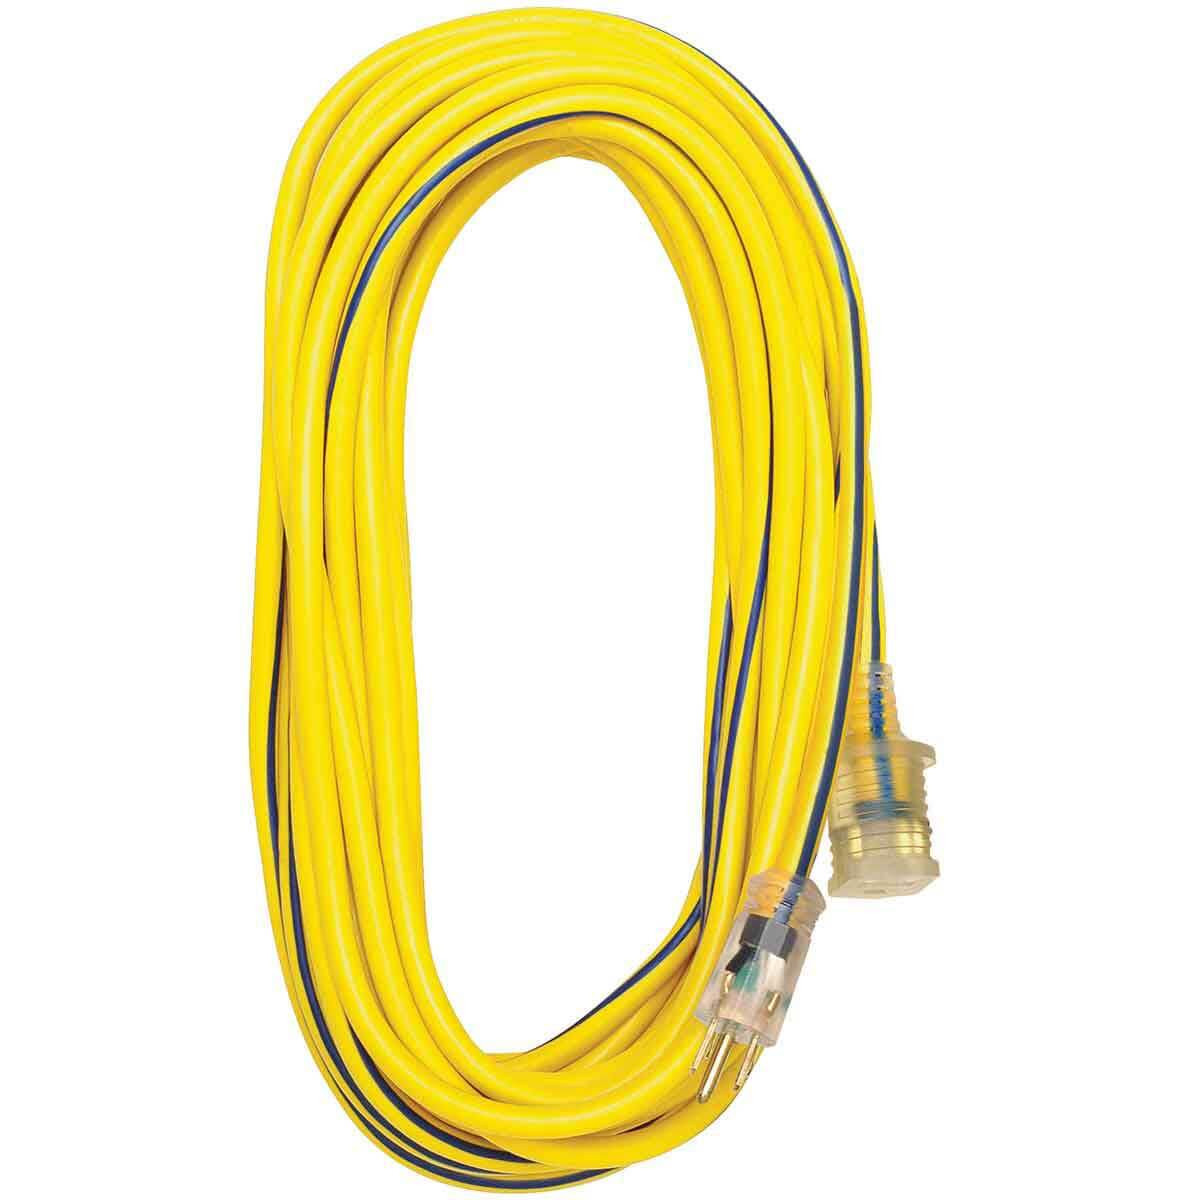 voltec 25ft outdoor extension cord